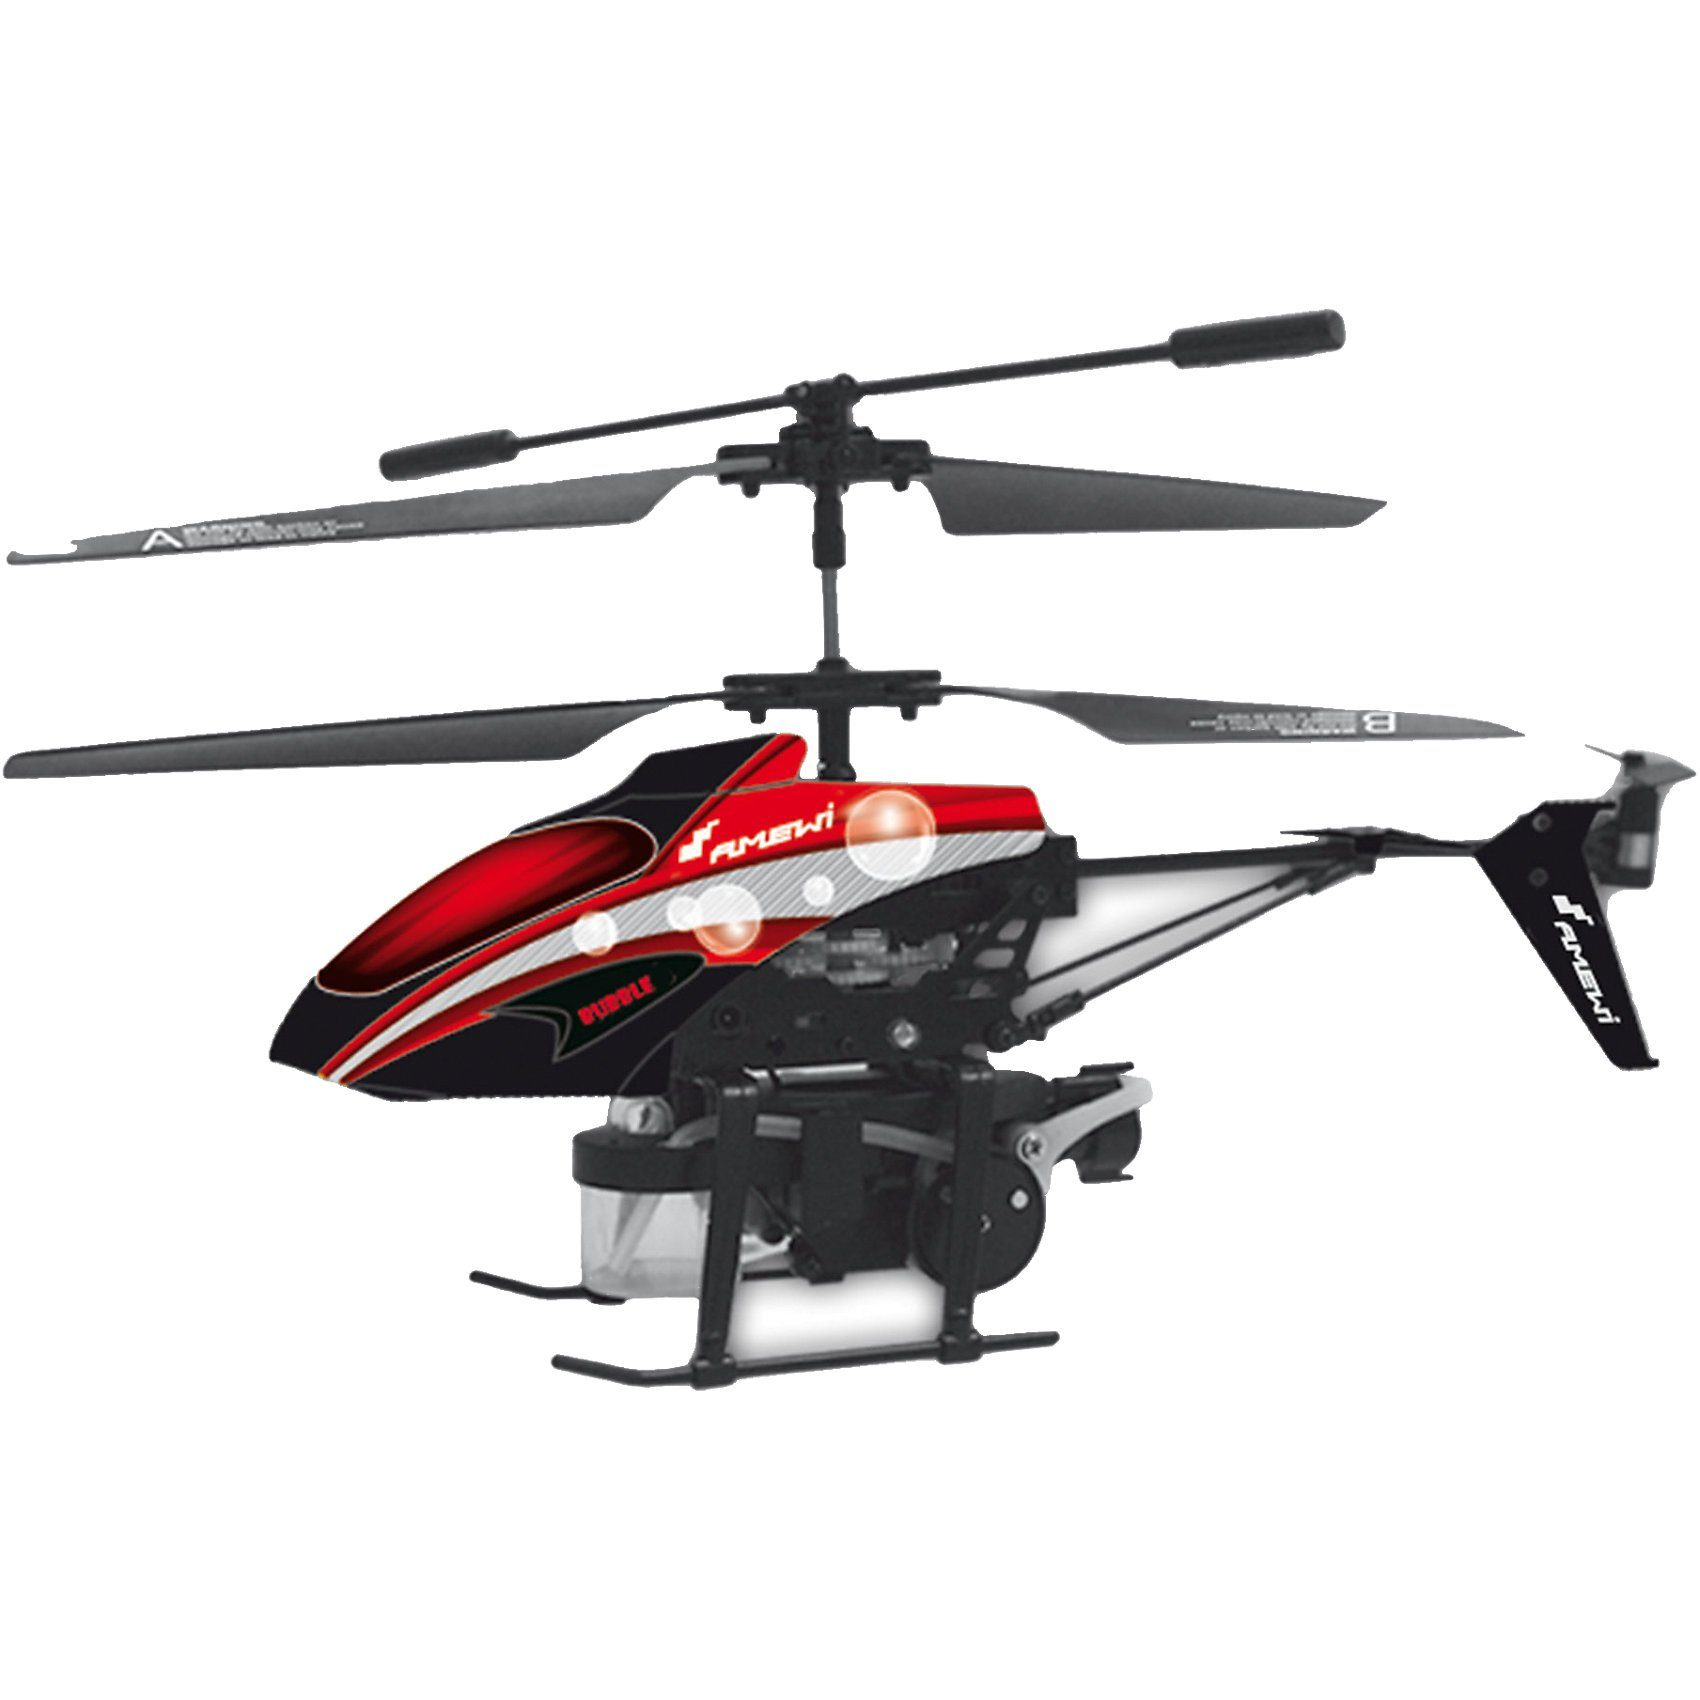 Amewi RC Helikopter mit Seifenblasenfunktion Firestorm Bubble Copt